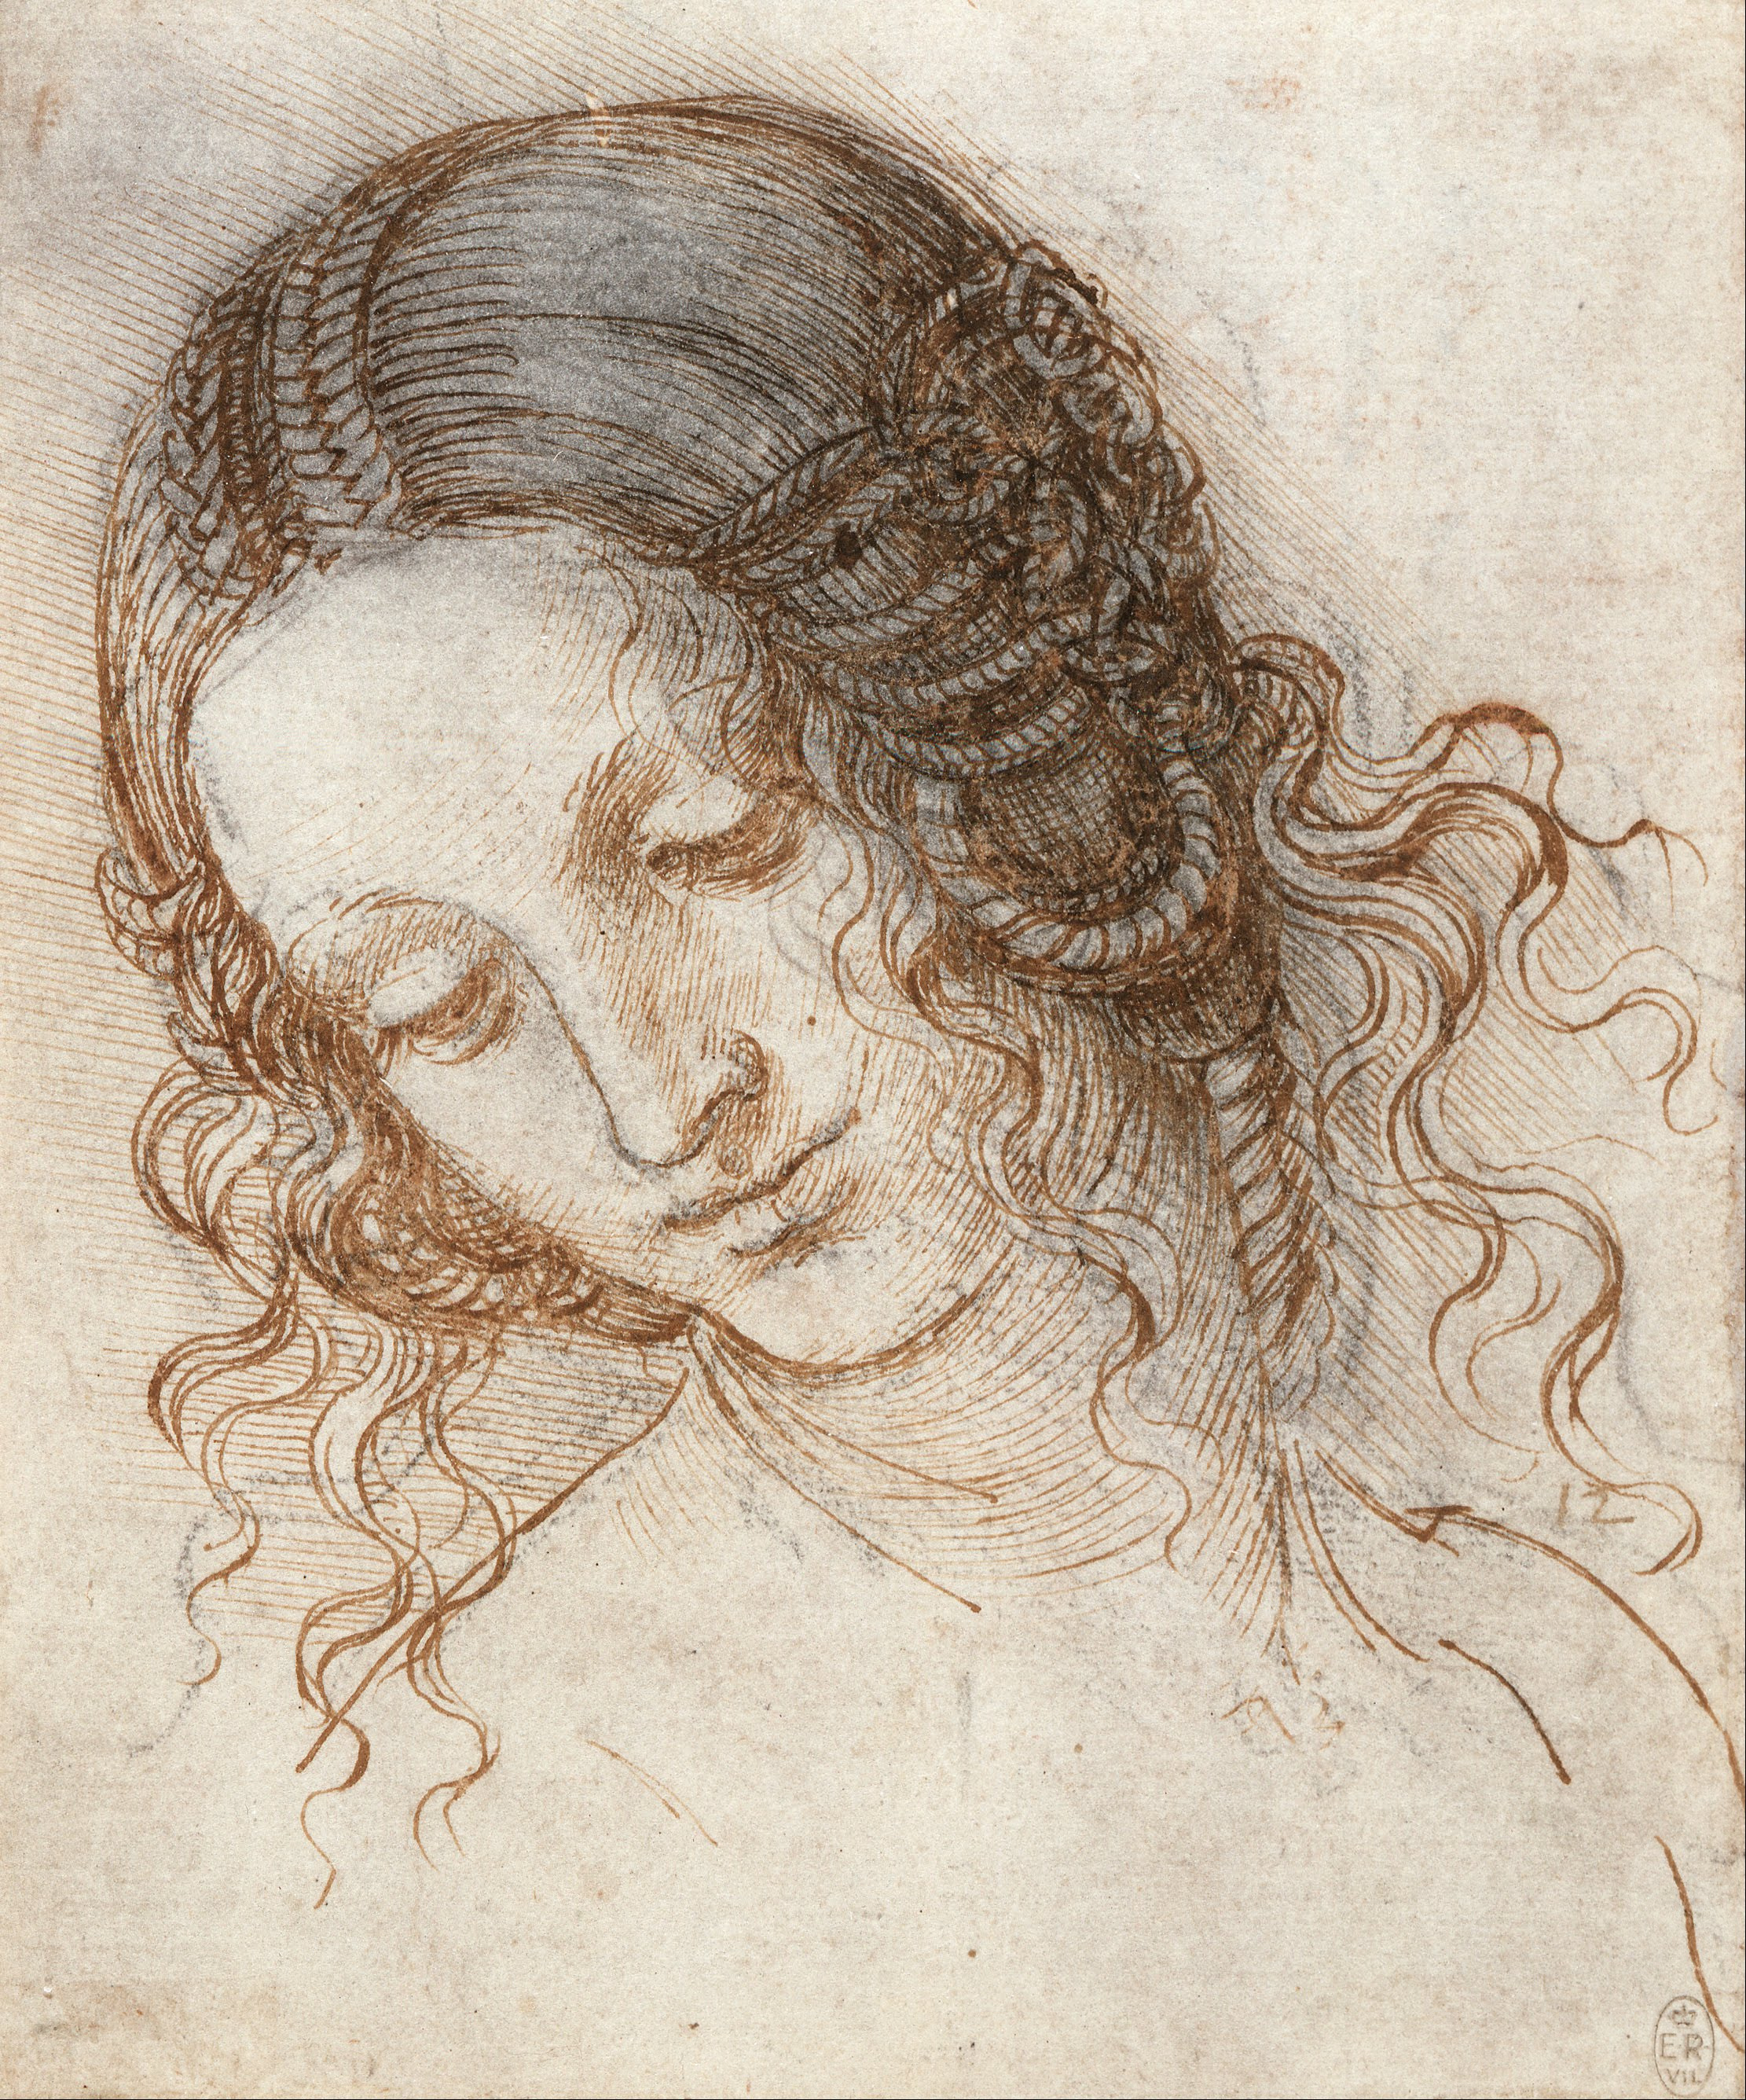 Contour Line Drawing Leonardo Da Vinci : File leonardo da vinci head of leda google art project